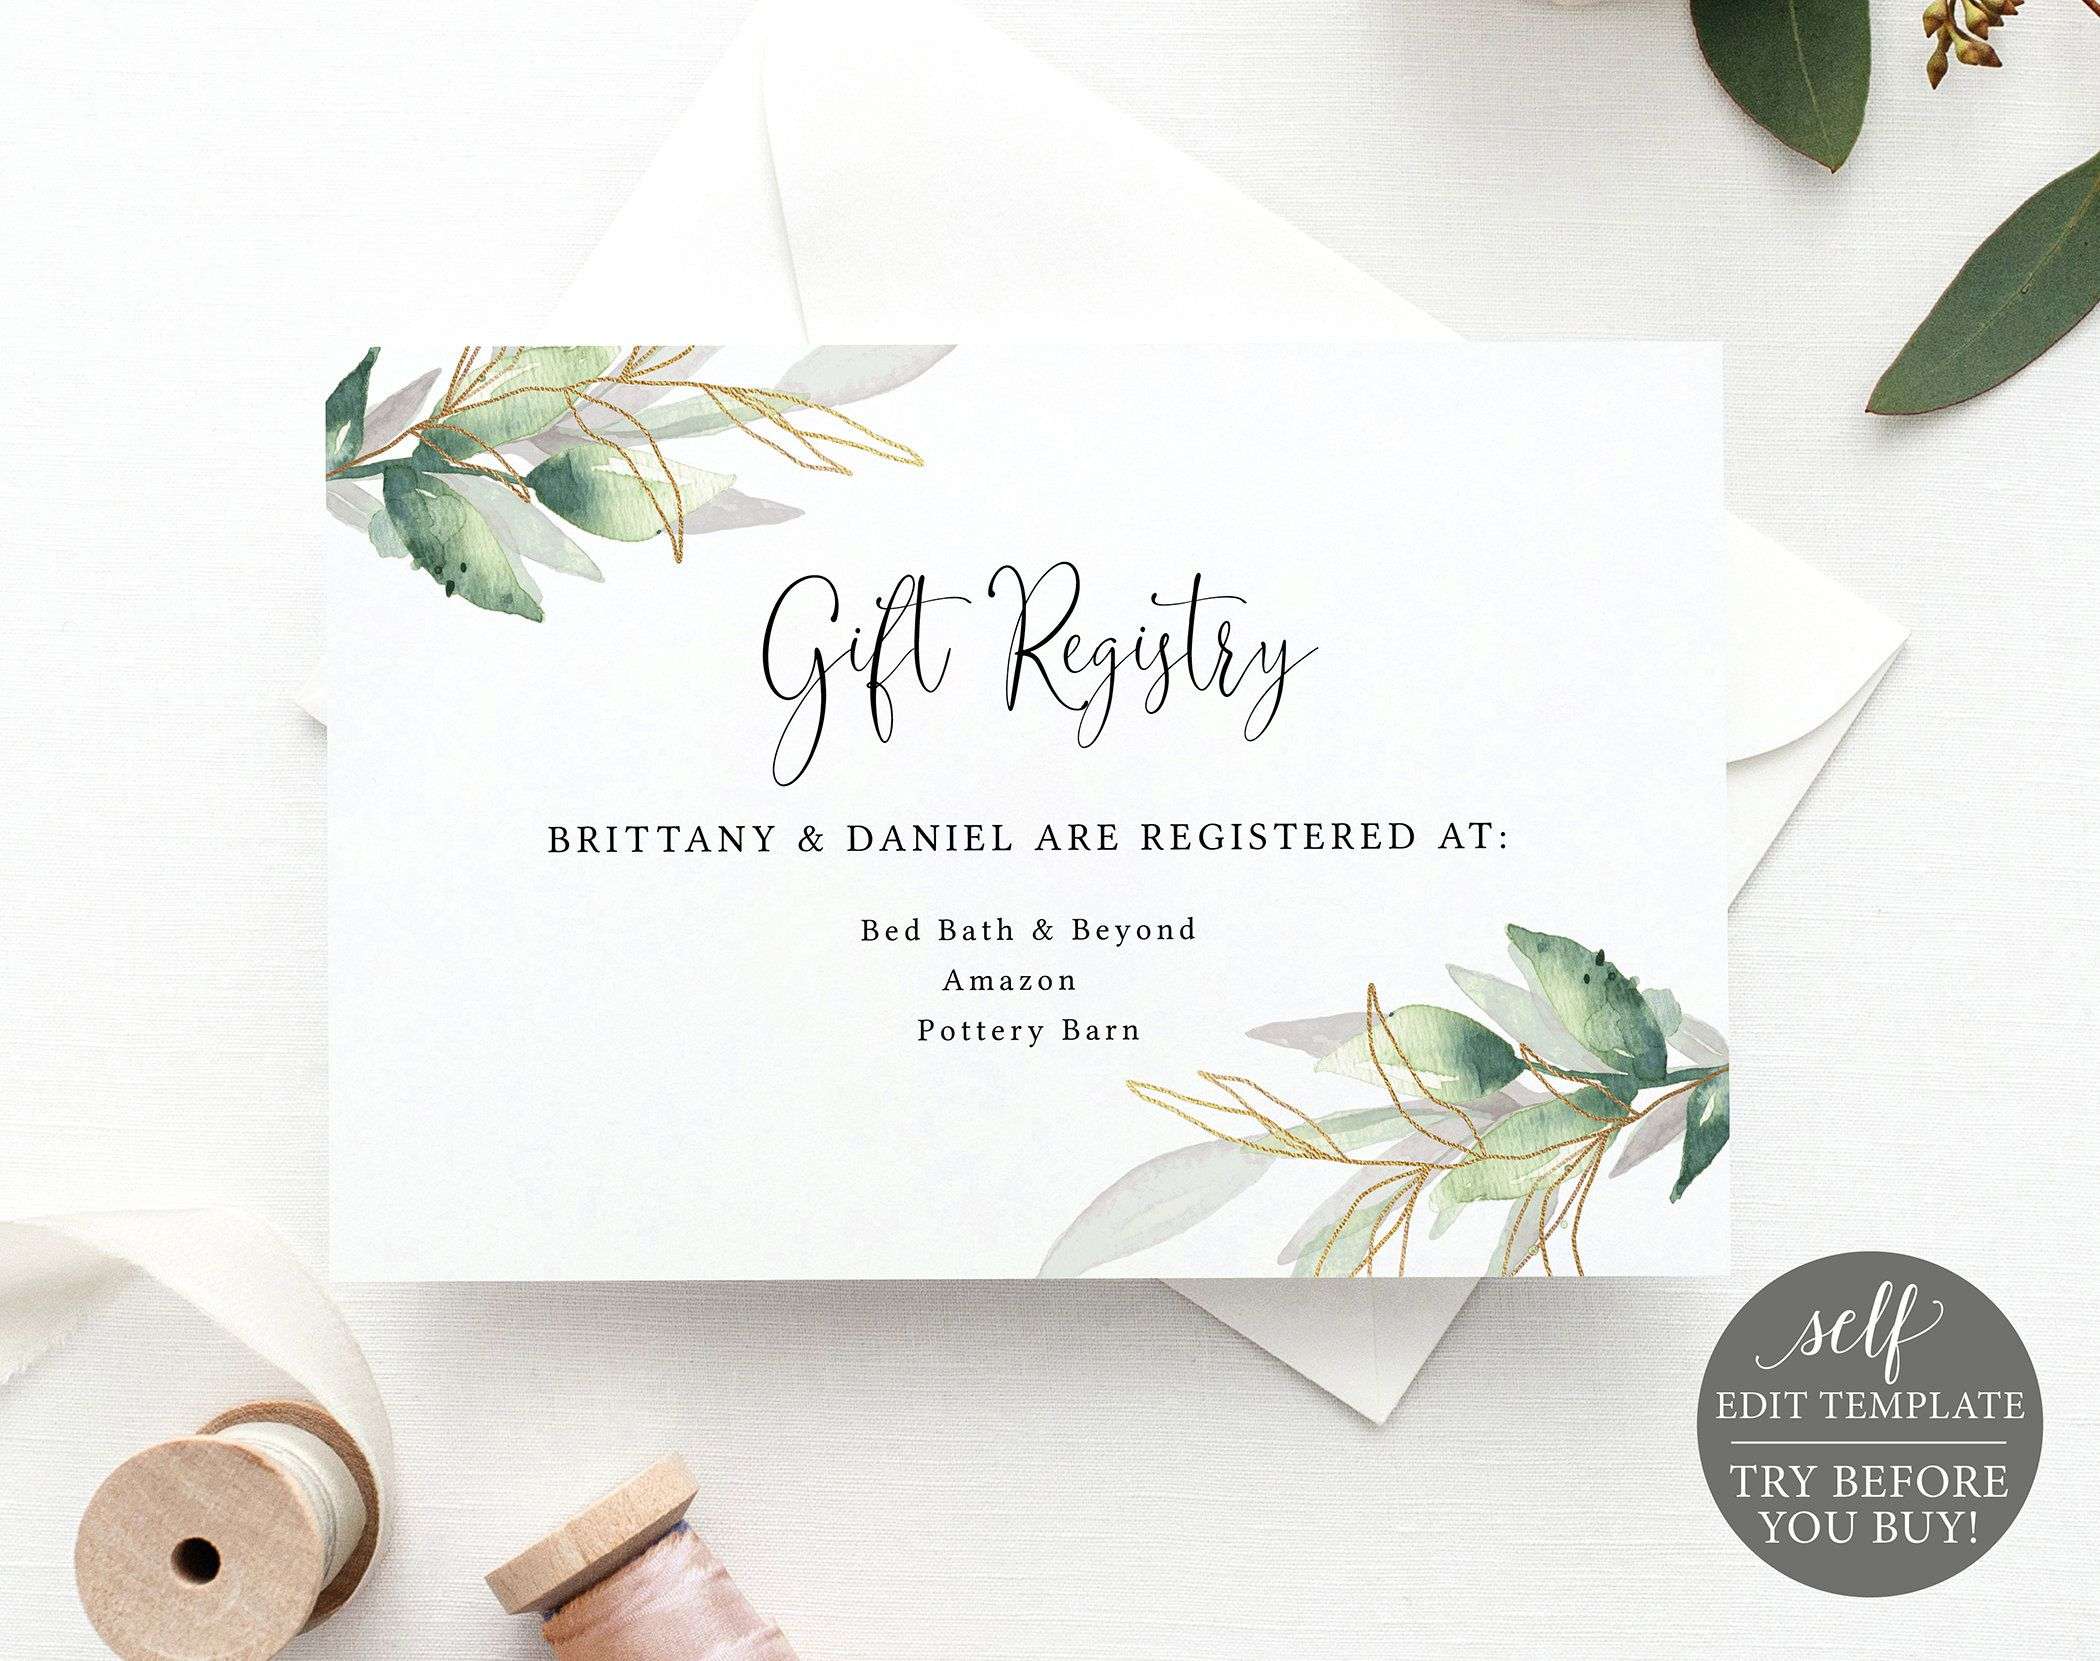 Wedding Gift Registry Card Template Greenery Gold Editable Etsy Wedding Gift Registry Cards Gift Card Template Wedding Gift Cards